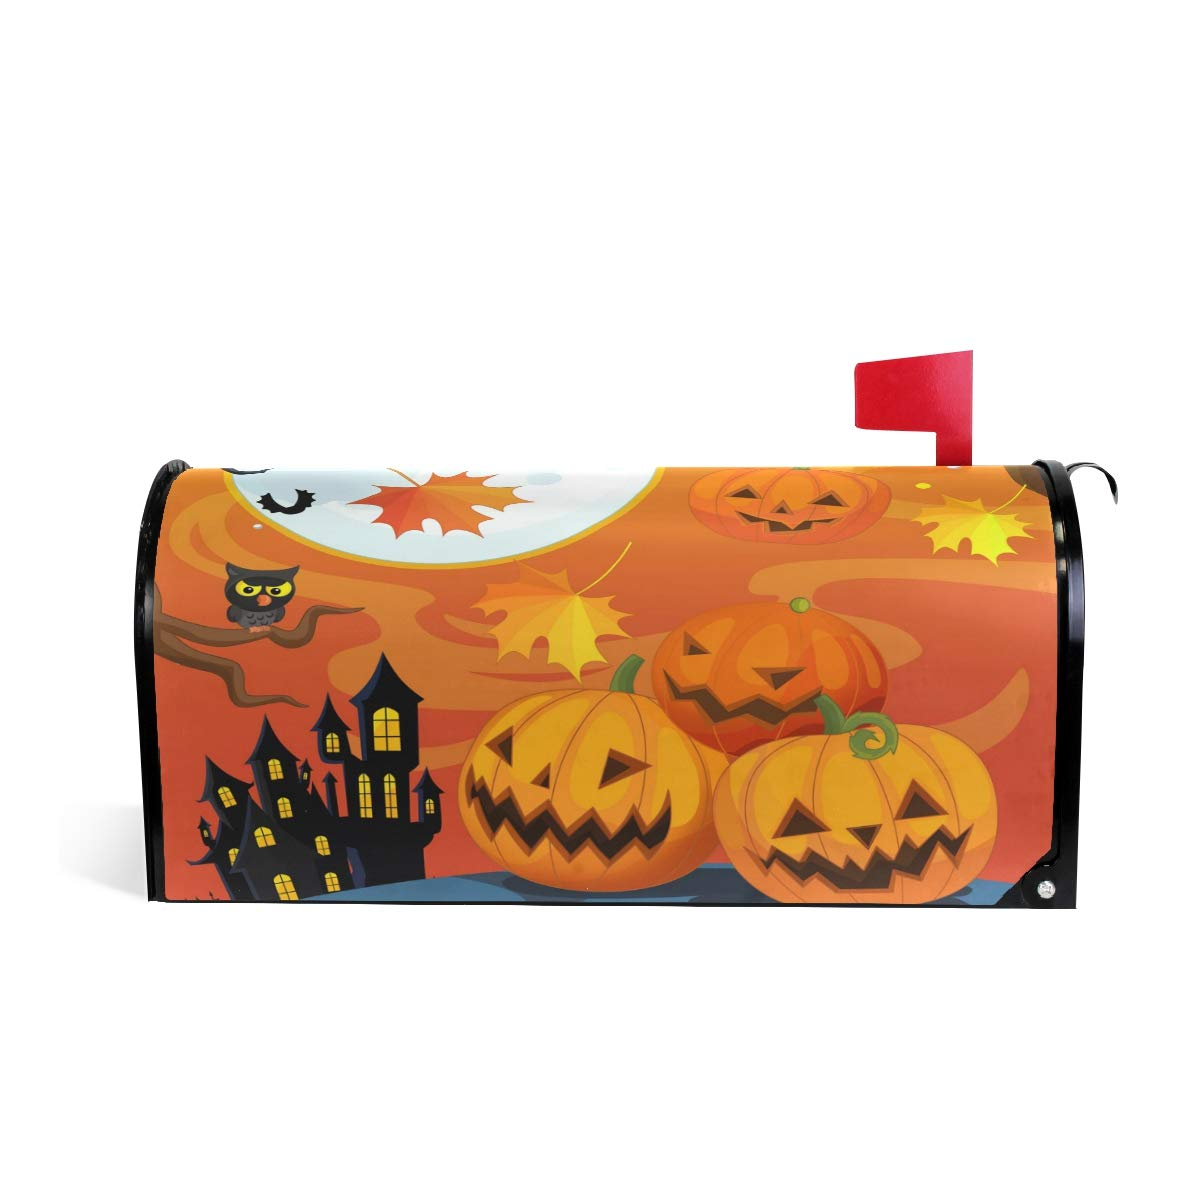 """Naanle Halloween Magnetic Mailbox Cover, Cute Owl and Halloween Pumpkin Autumn Leaves Mailbox Wrap Home Decorative for Large Size 25.5""""(L) x 20.8""""(W)"""